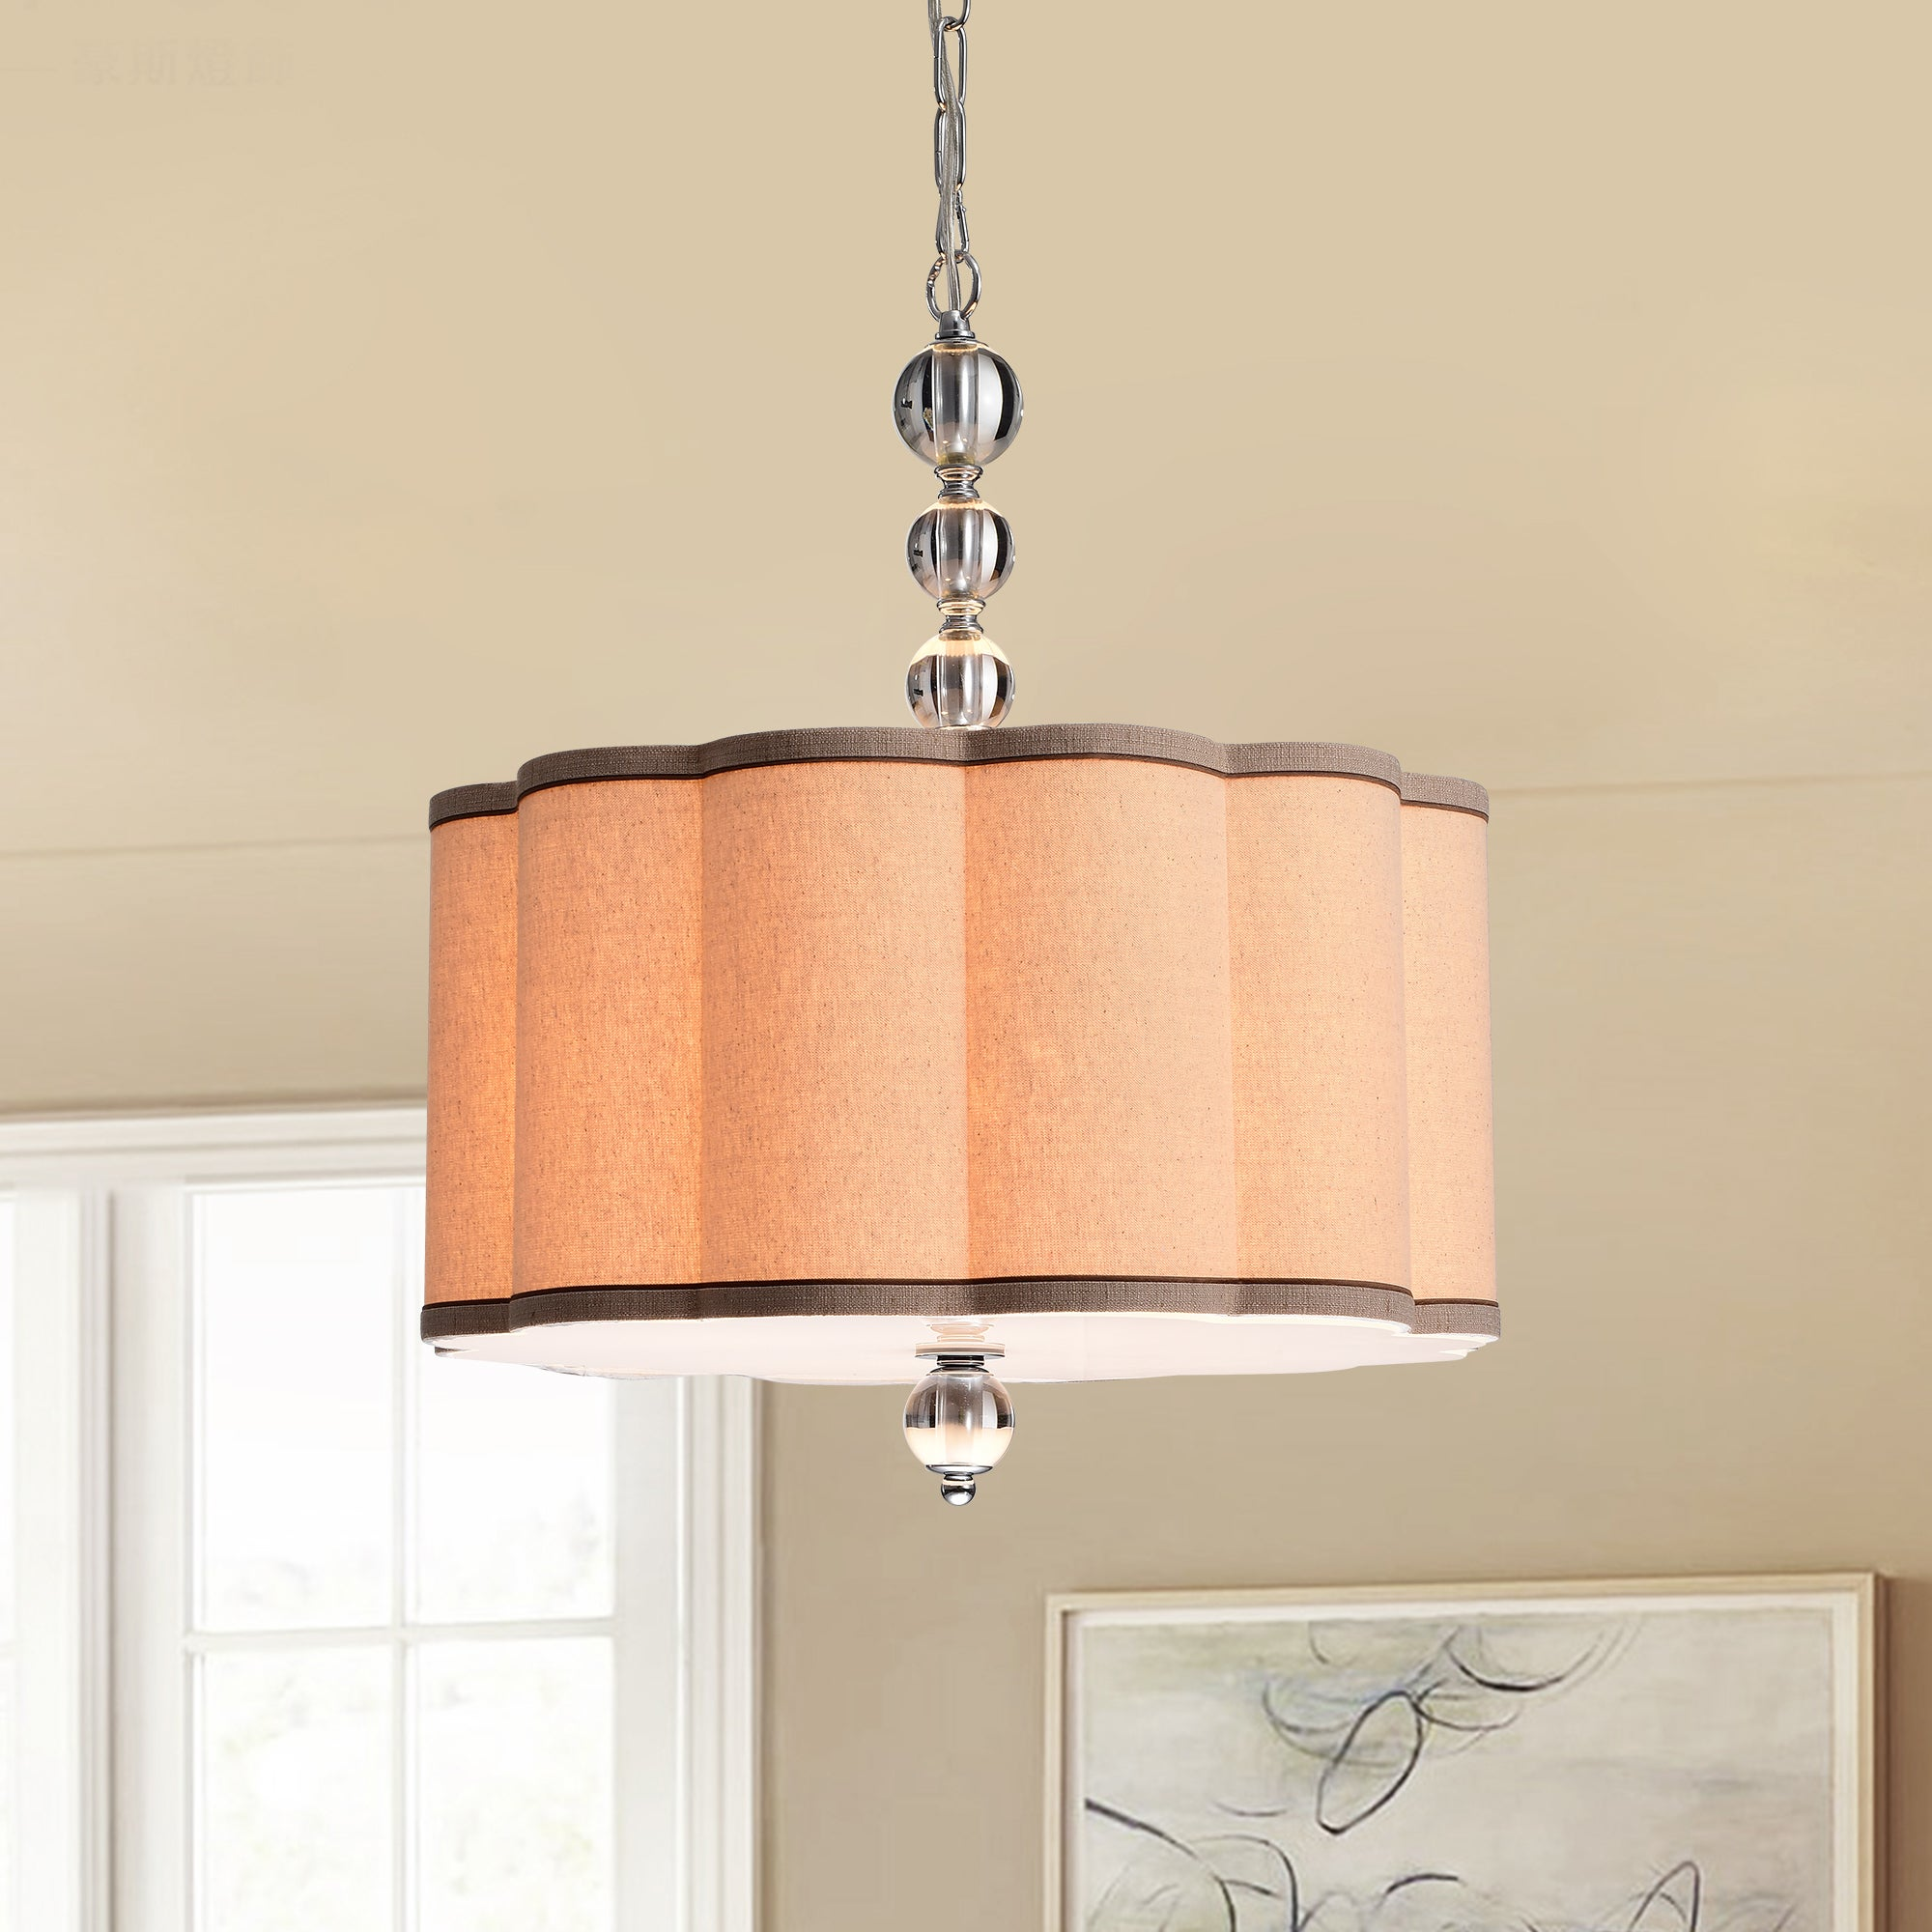 Shop Black Friday Deals On Desiree 4 Light Chrome Pendant Lamp With Textile Shade Overstock 20466055